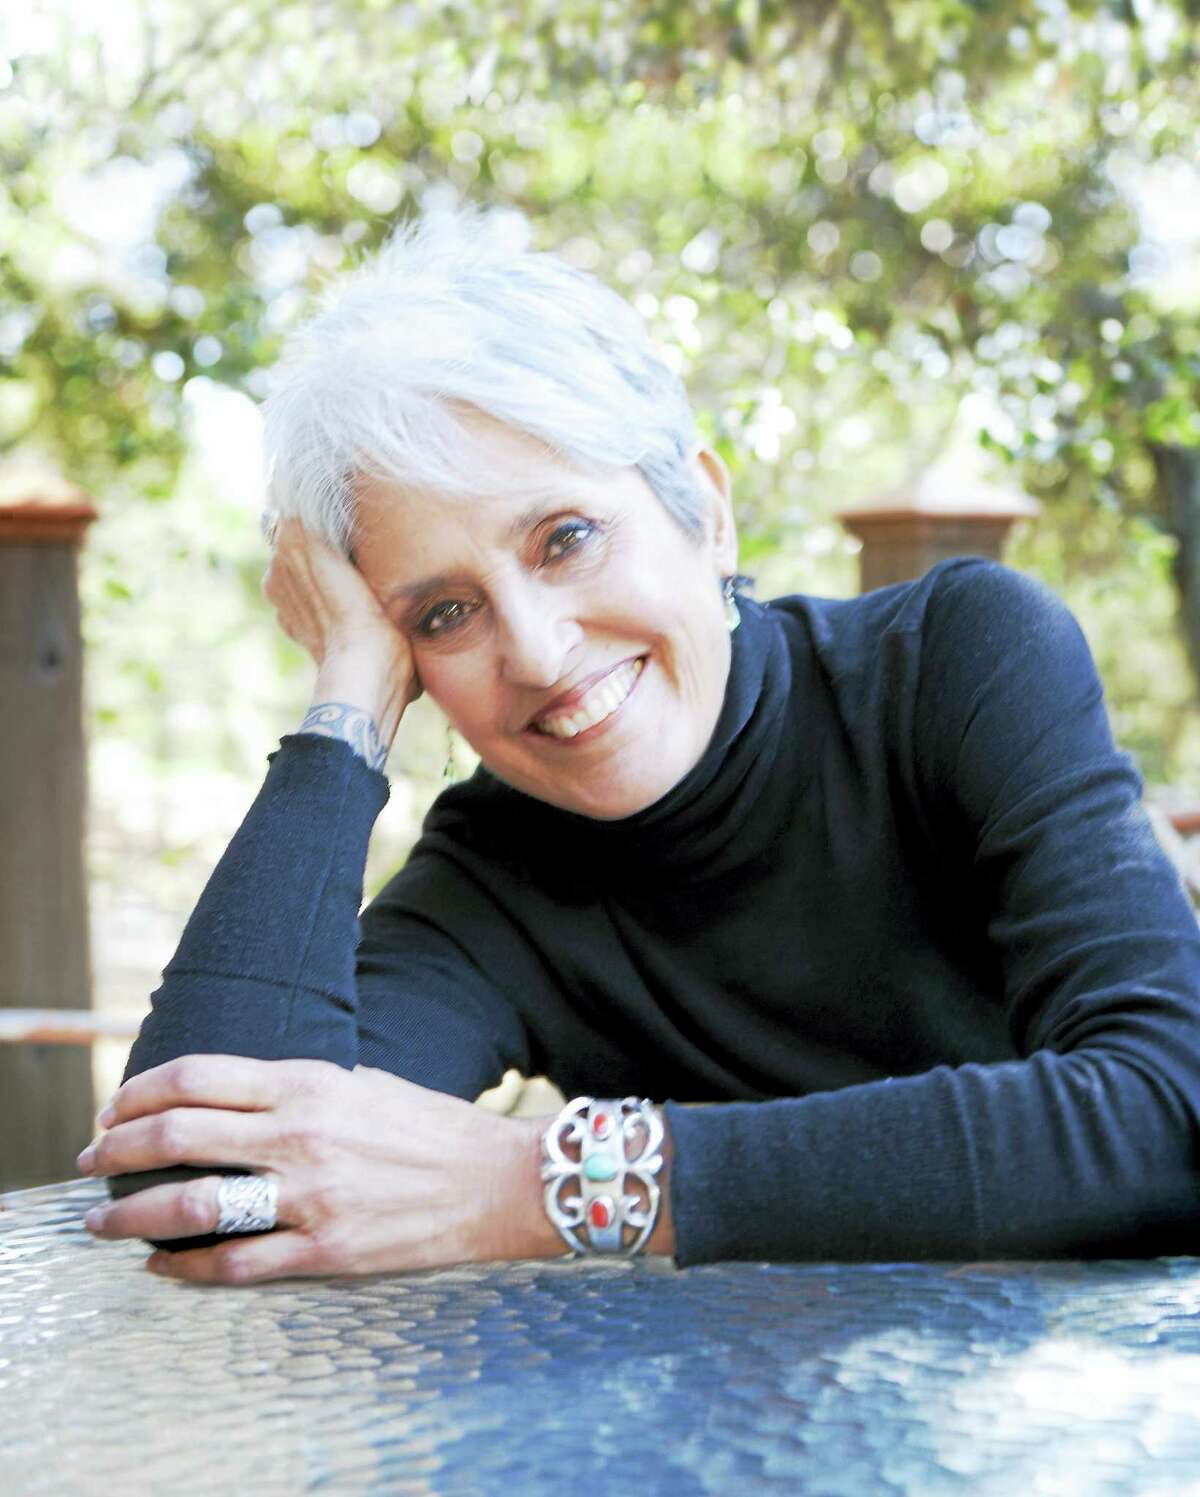 Joan Baez is celebrating her 75th birthday with a tour that will make a stop at New Haven's Shubert Theatre on Thursday.